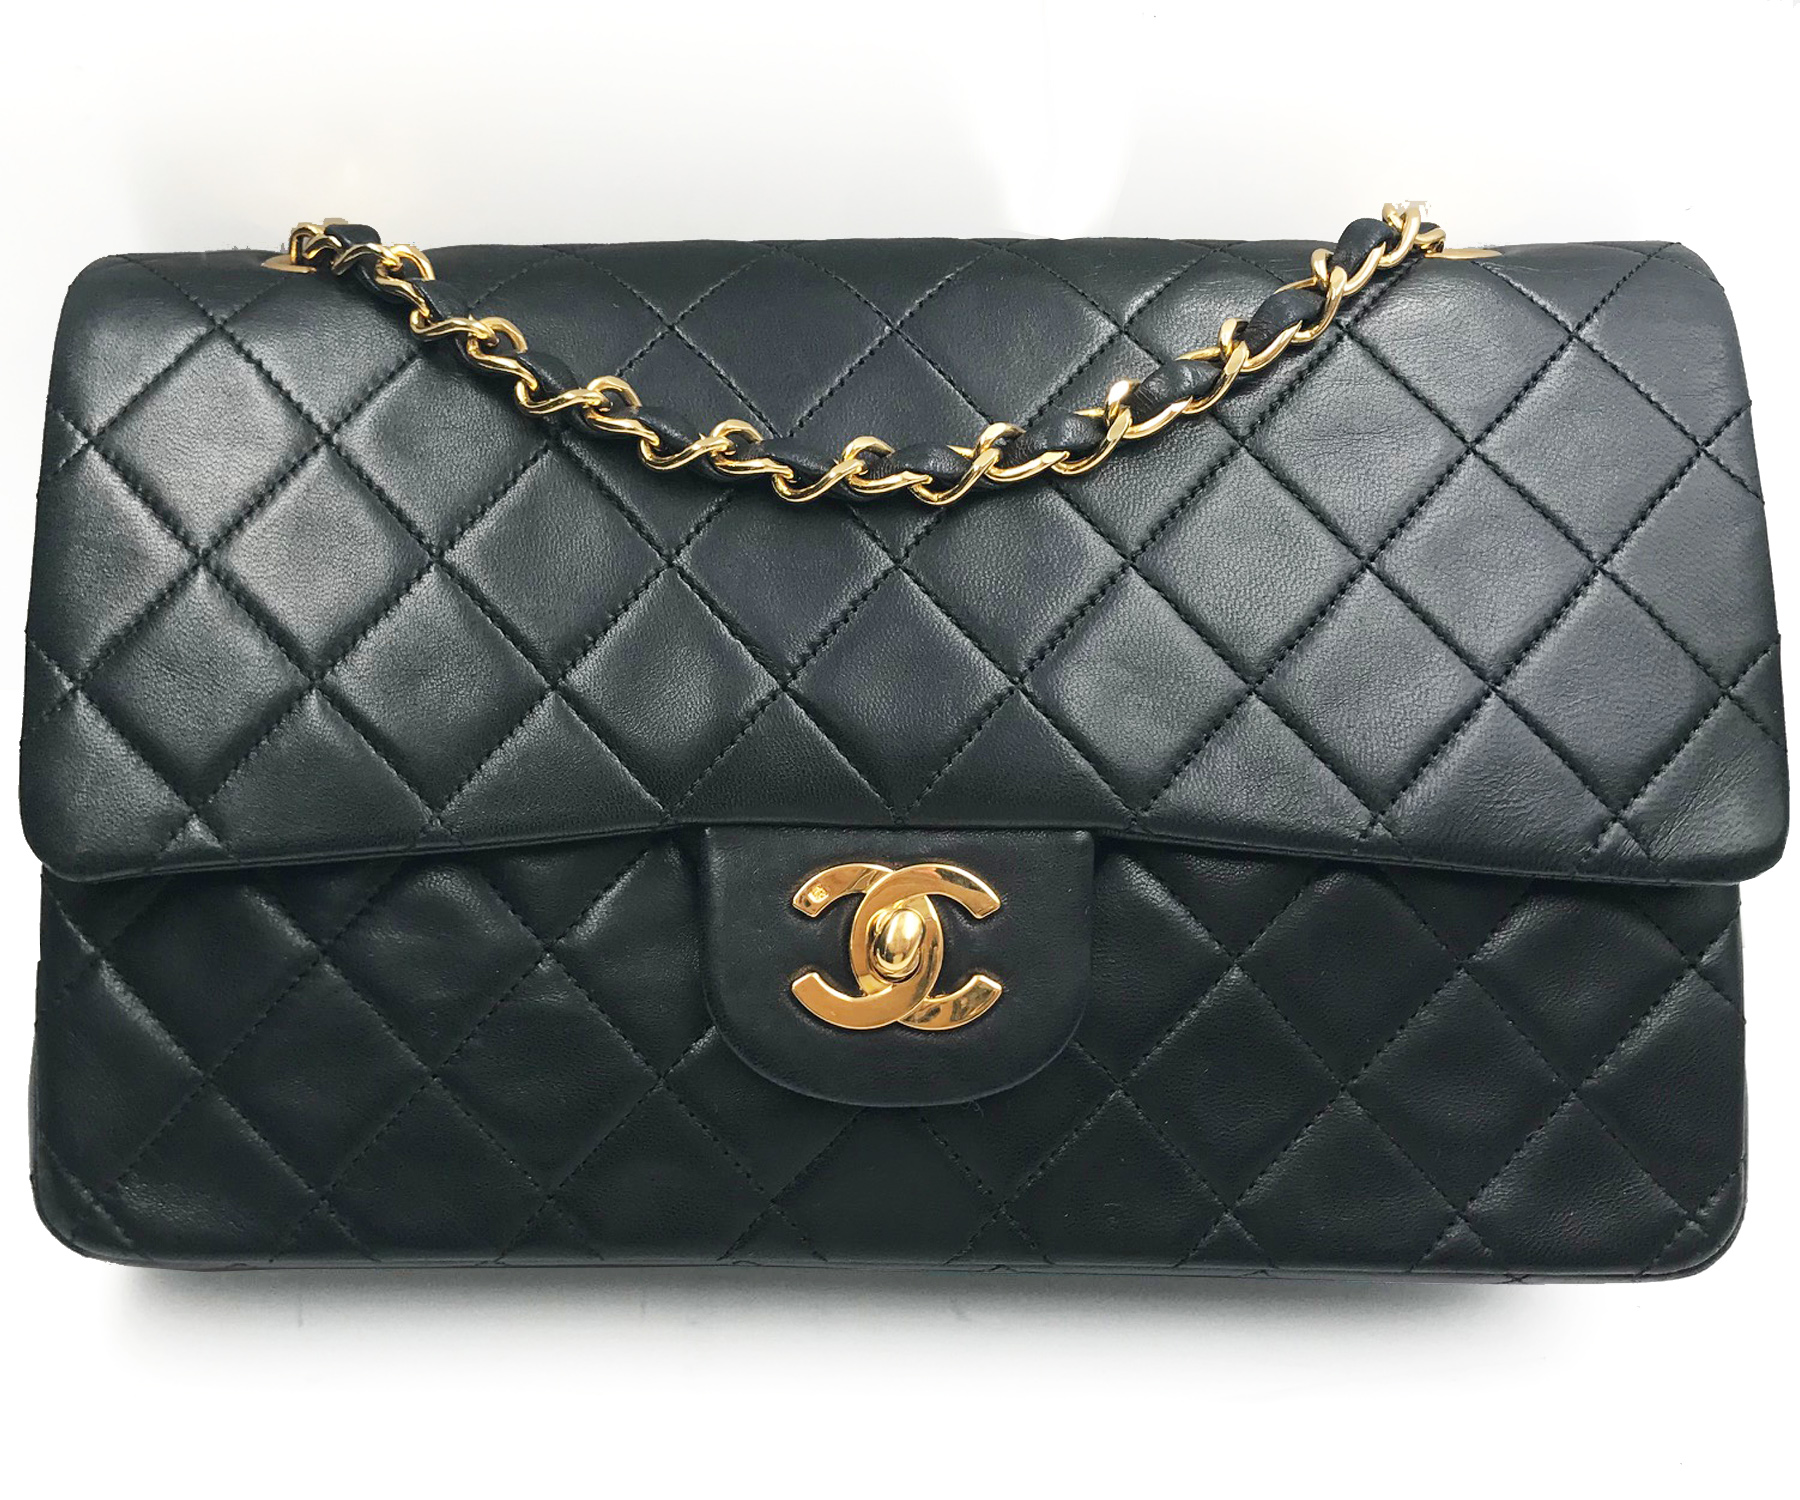 52b6c823c0d7 Chanel Vintage 2.55 Bag Price | Stanford Center for Opportunity ...